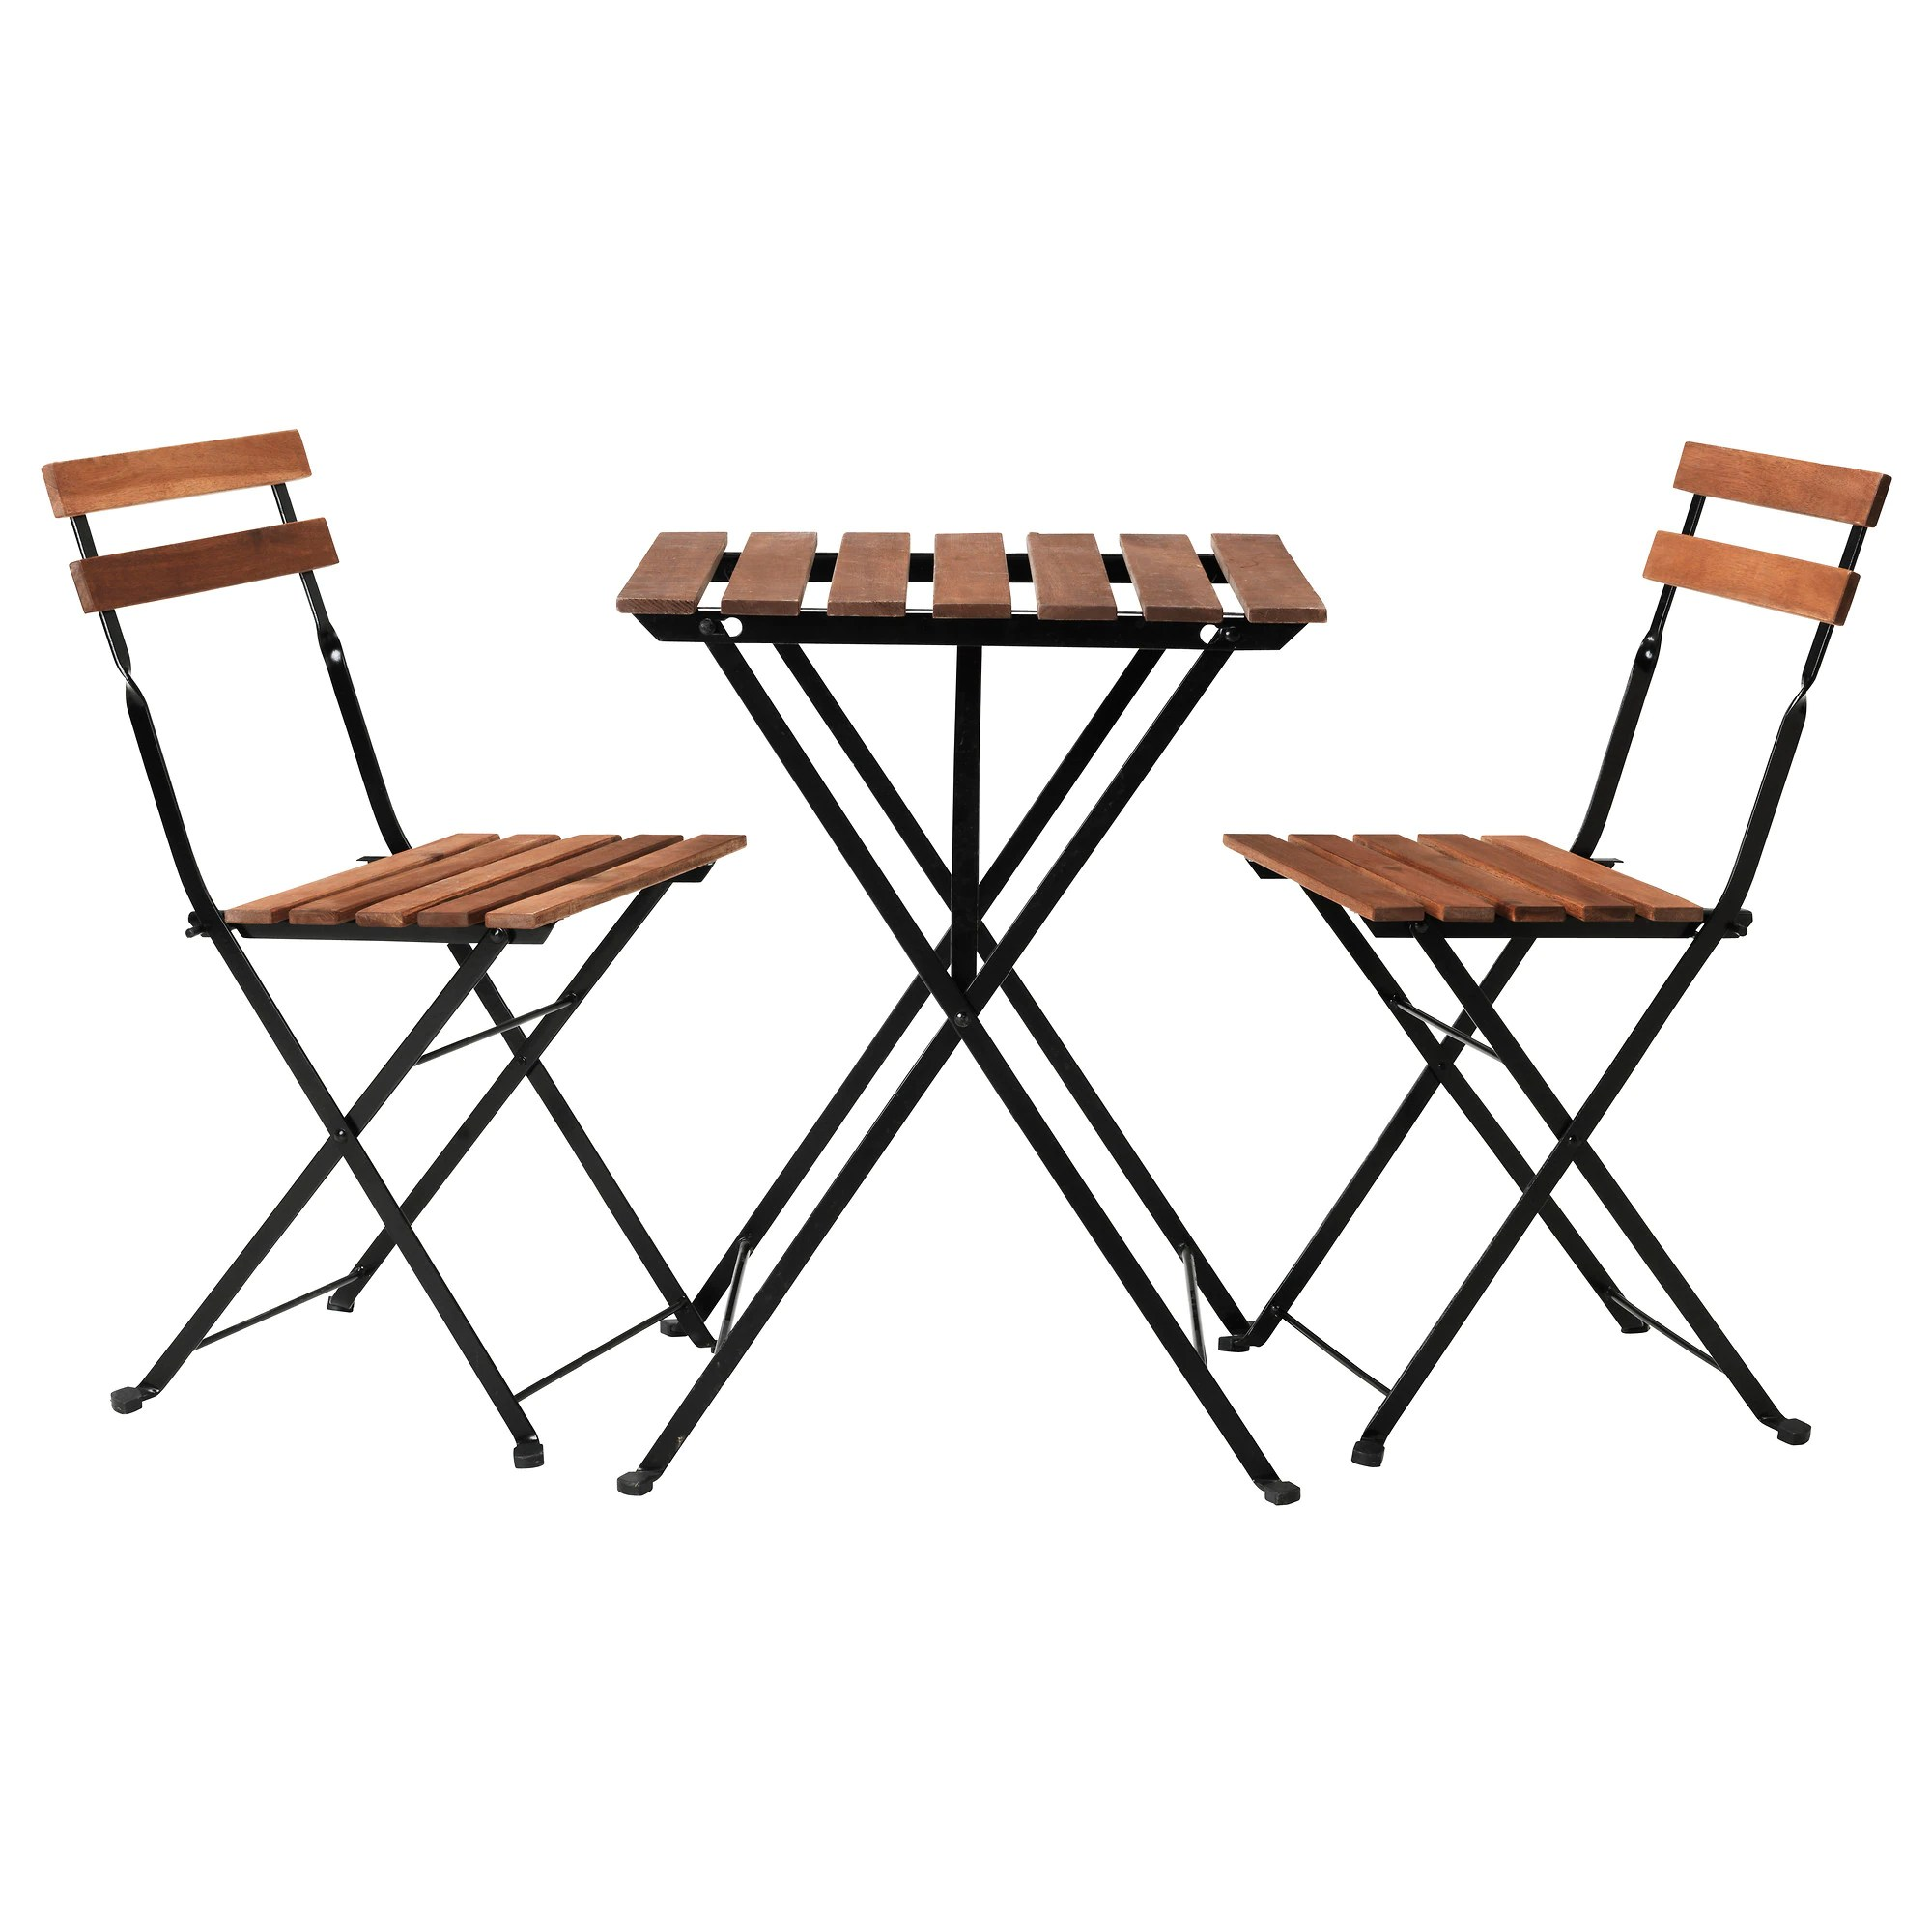 Folding Wooden Table Ikea TÄrnÖ Table 2 Chairs Outdoor Black Acacia Steel Gray Brown Stained